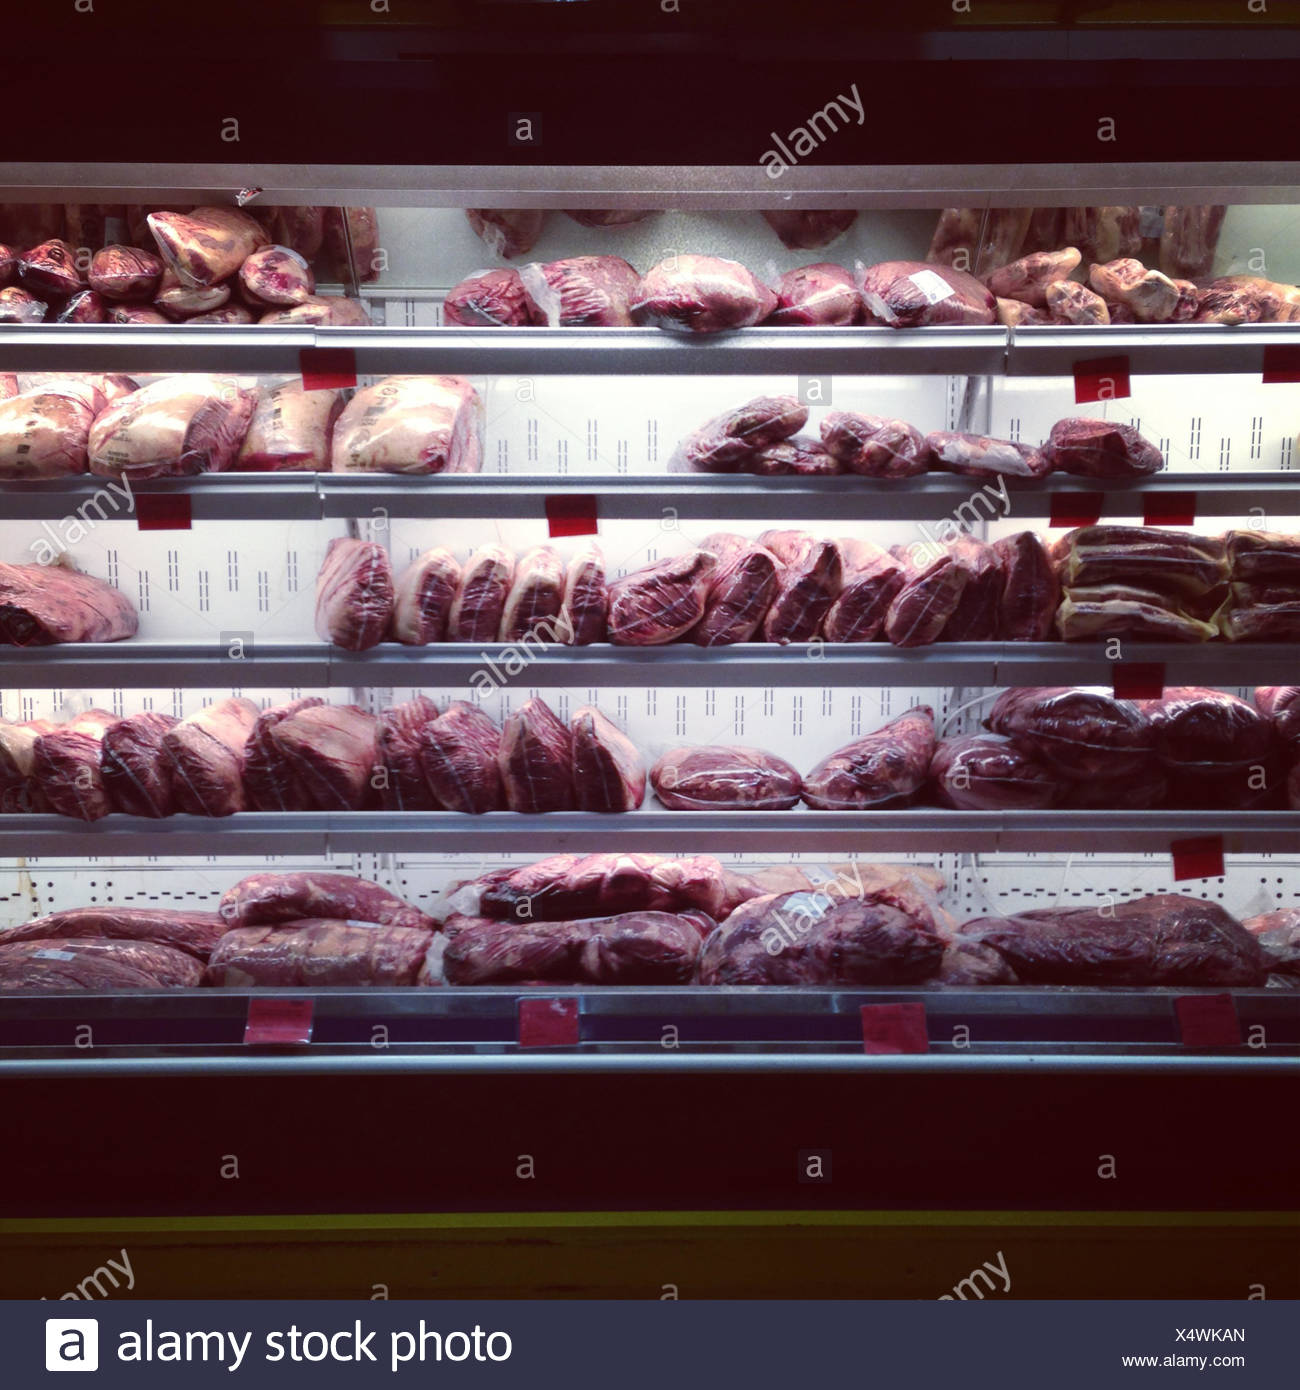 Close-up of meat in a supermarket fridge - Stock Image